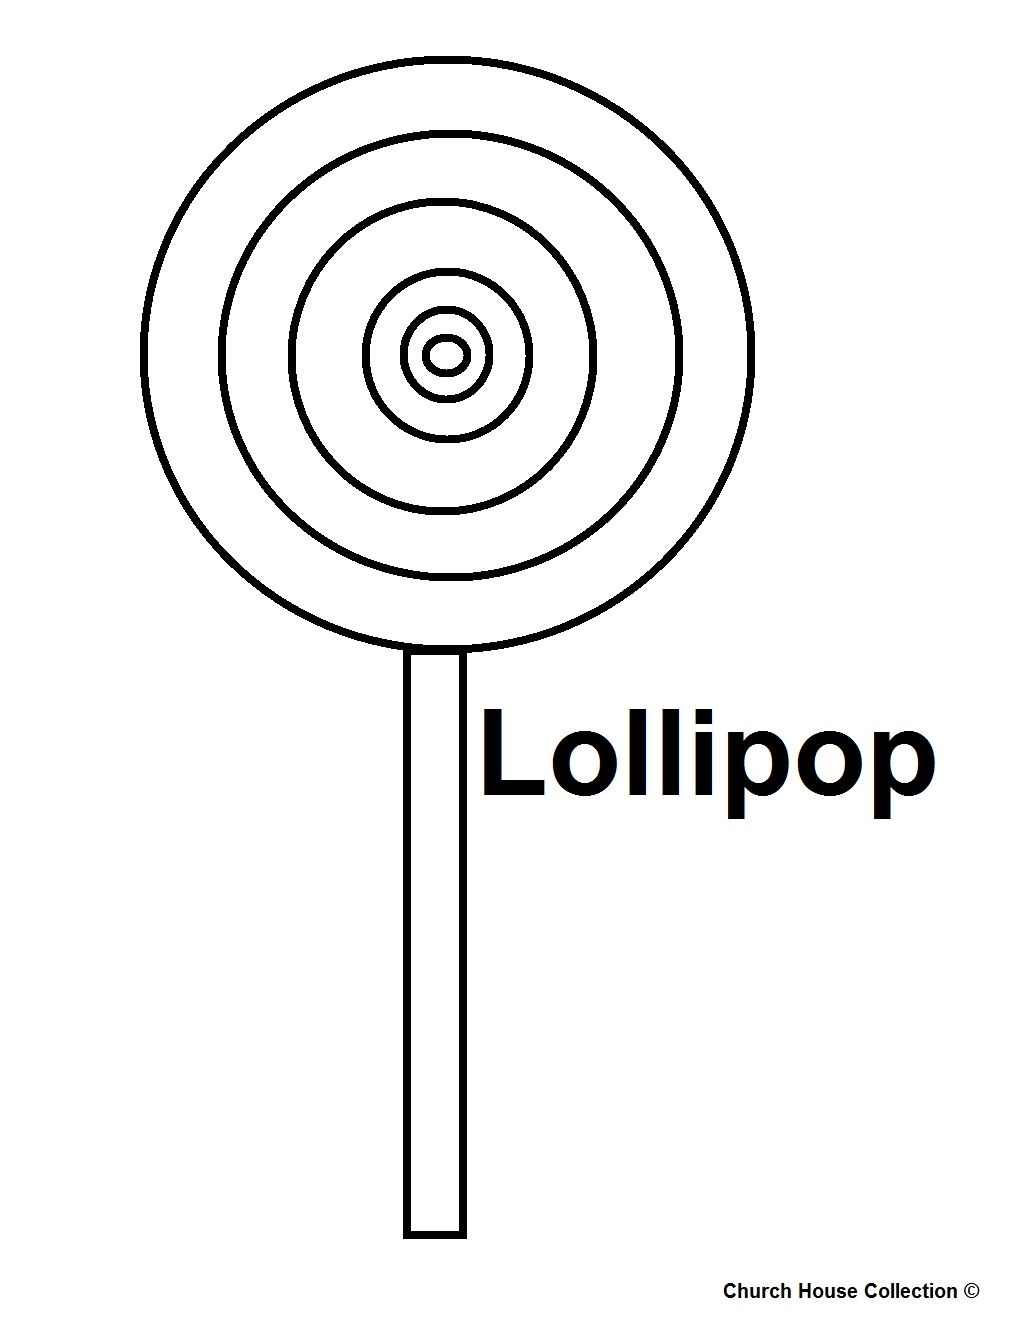 easy coloring pictures lollipop google search - Lollipop Coloring Pages Printable